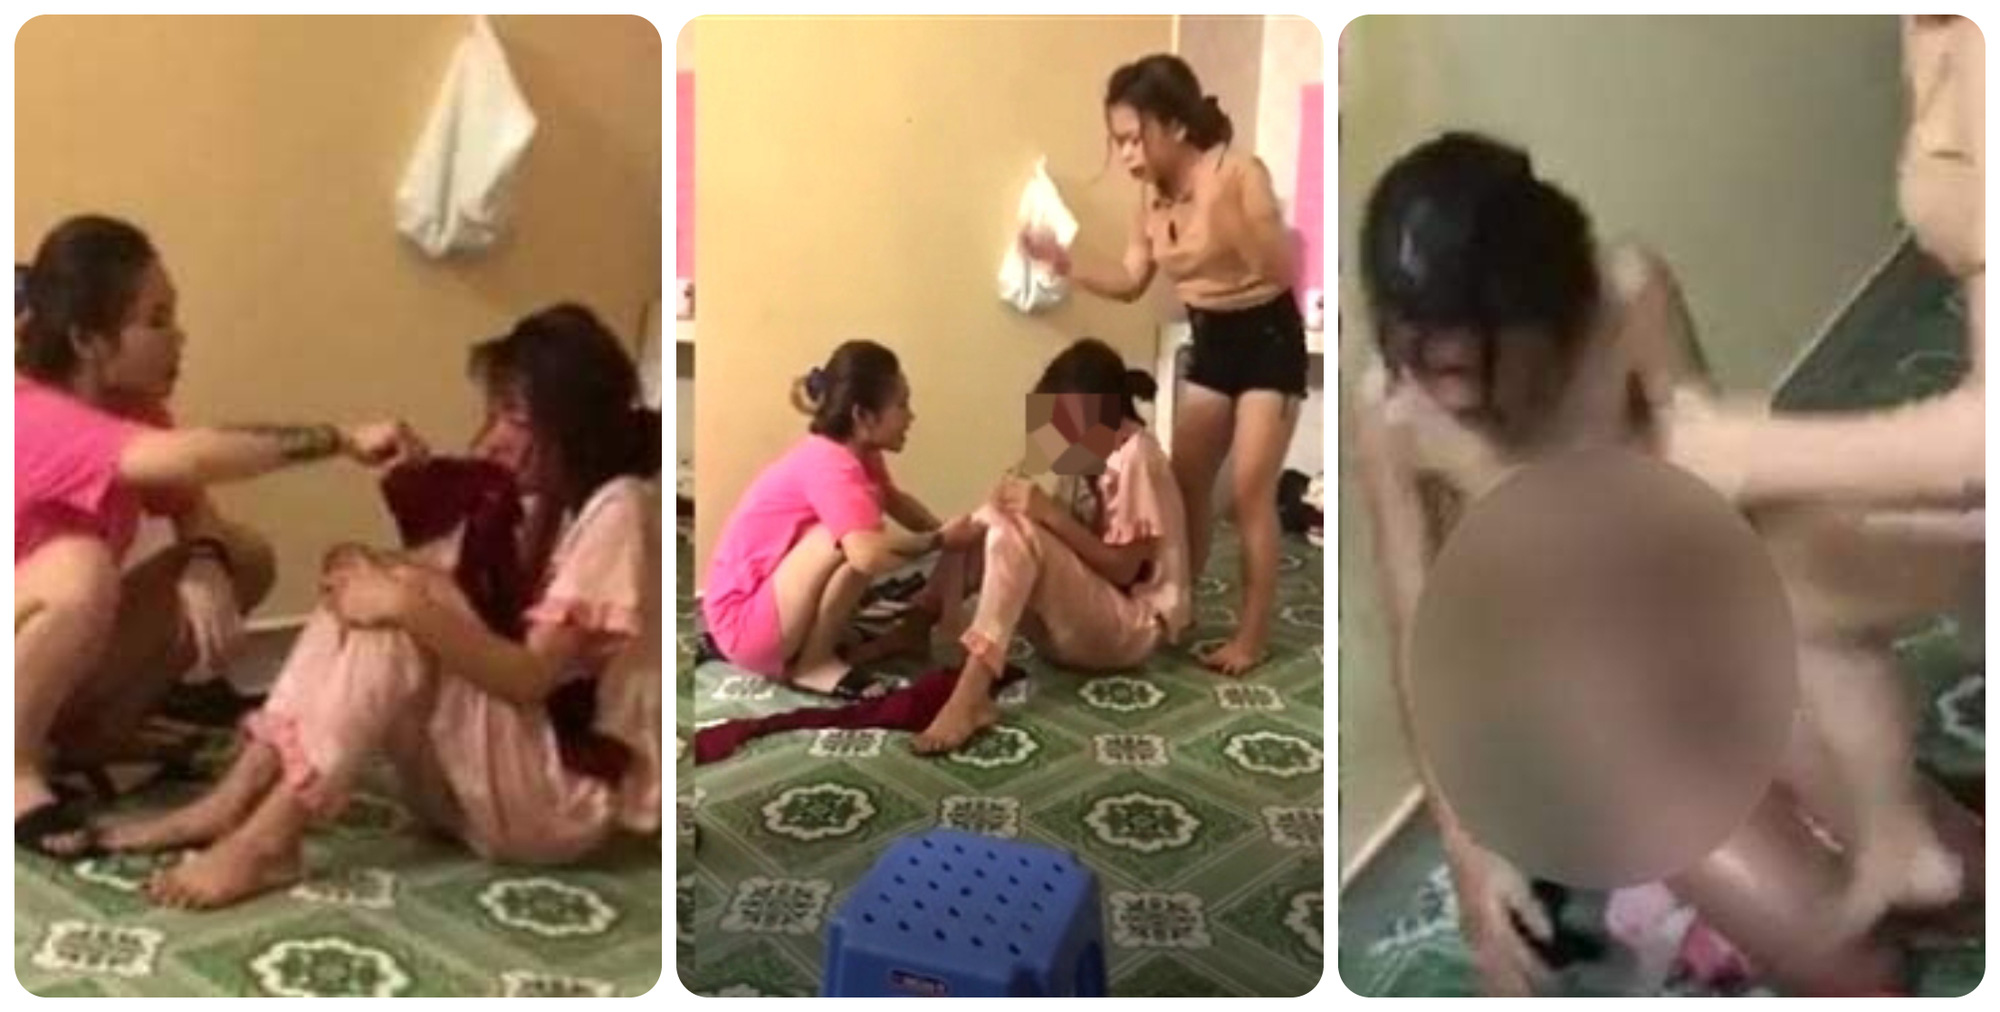 Group of girls, boy probed for attacking, insulting peer in northern Vietnam